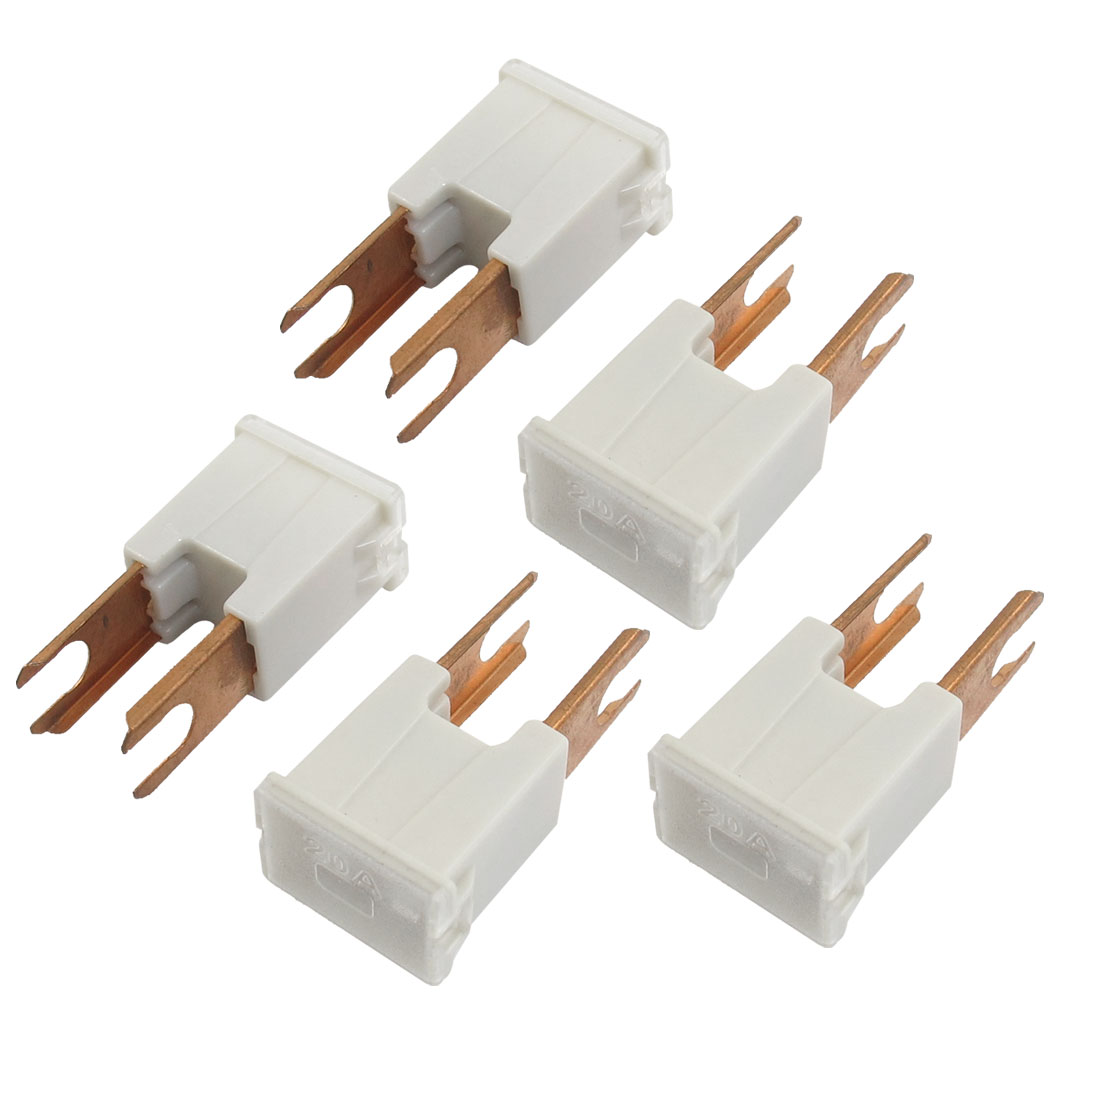 5 Pcs Auto Connecting Style 20A PAL Slow Blow Fuse White - image 1 of 1